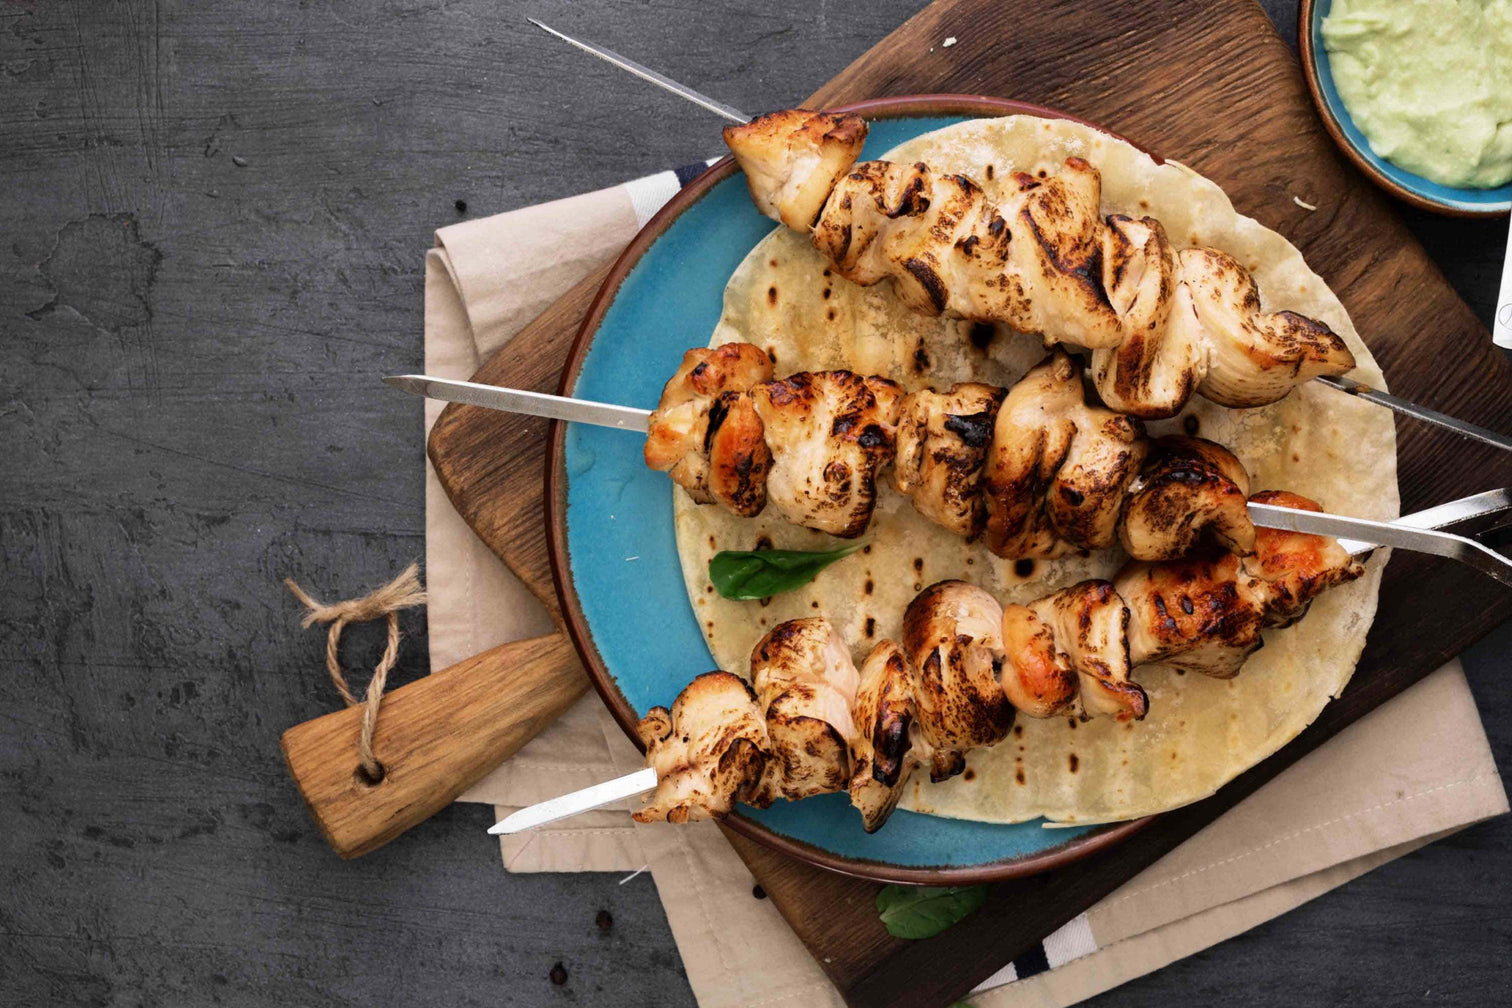 Grilled chicken skewers with piquant spices served on flatbread